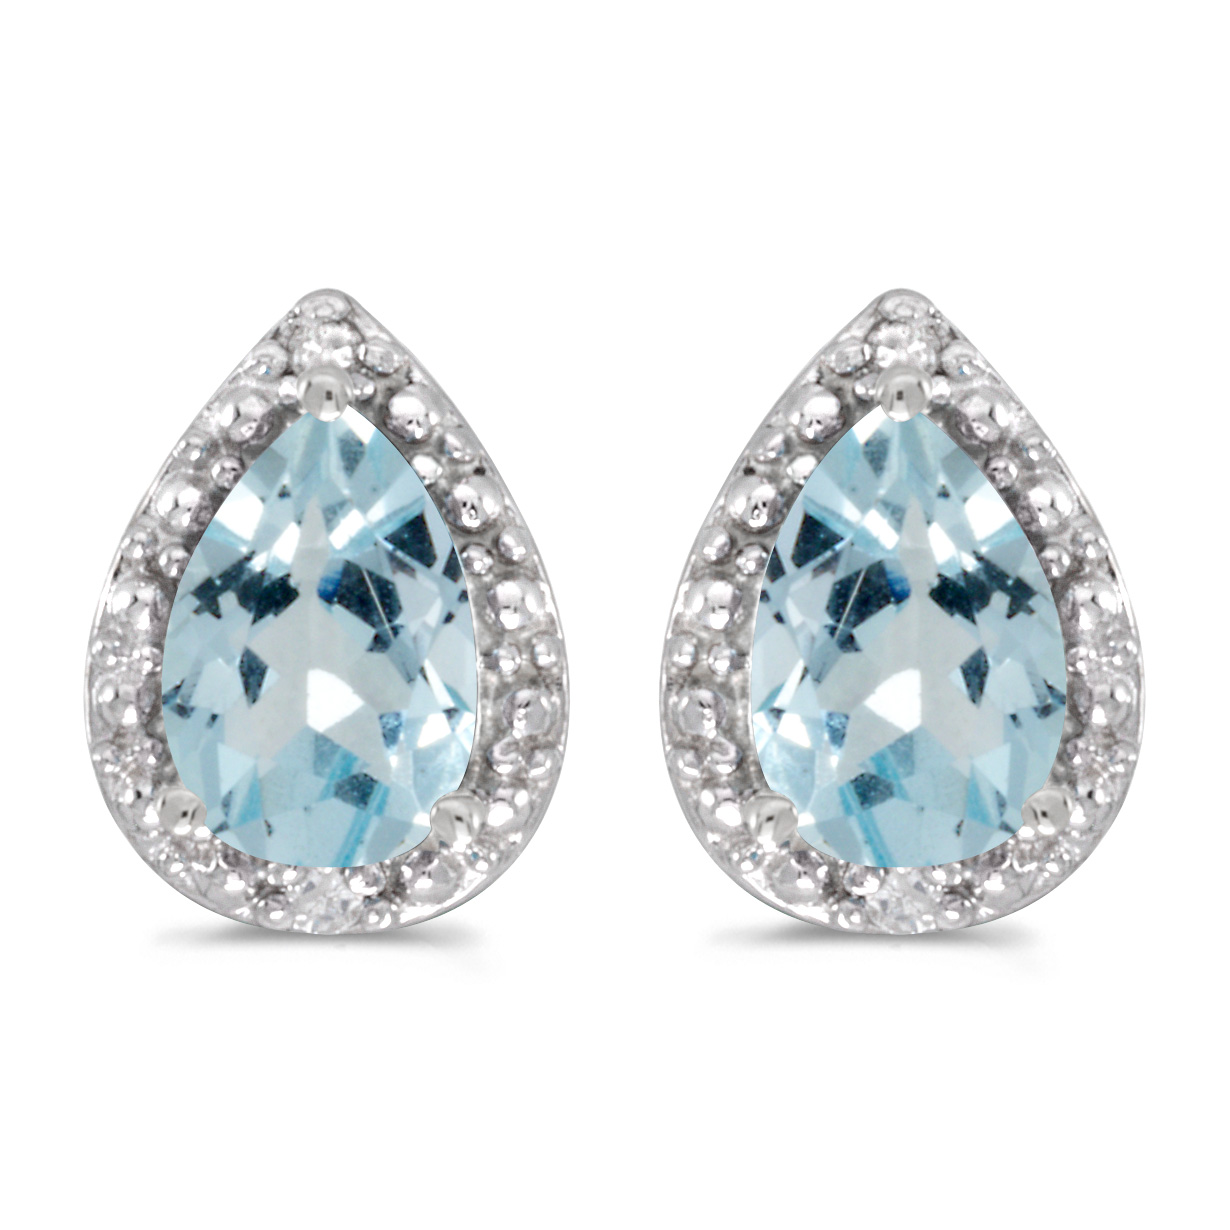 14k White Gold Pear Aquamarine And Diamond Earrings by